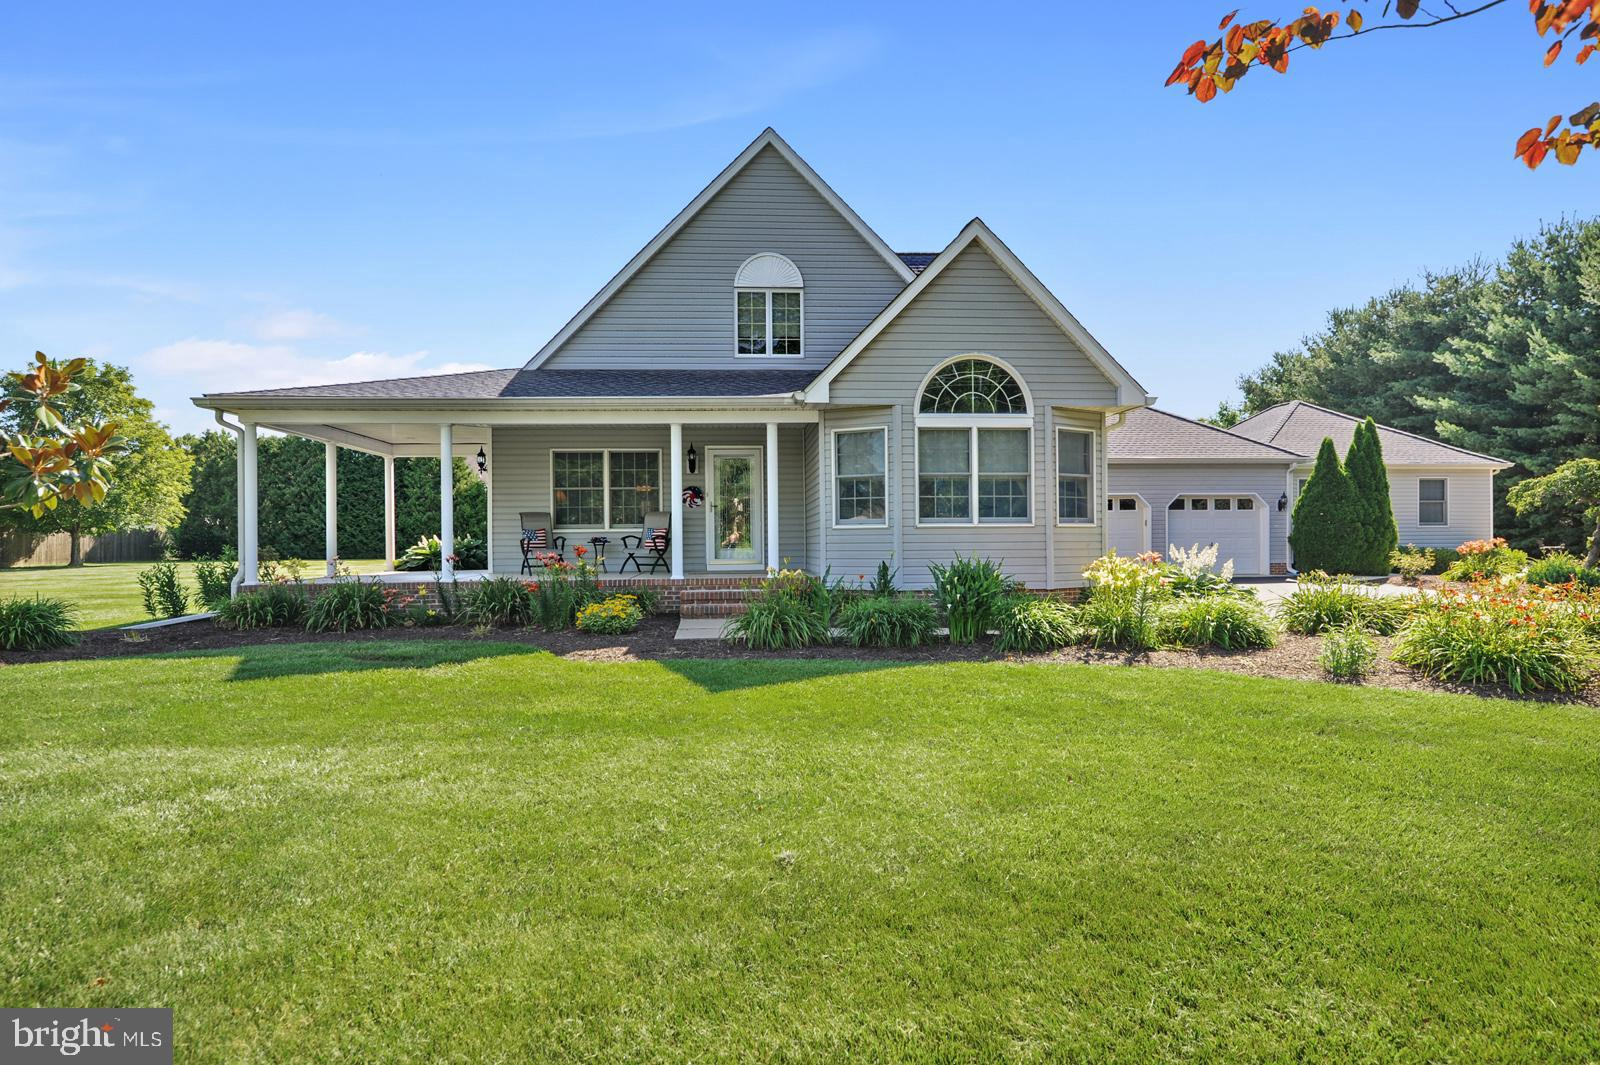 Country living close to city convenience! Pride of ownership shows in this lovely sprawling 1.5 story home on a wonderful 1 acre lot with tons to offer. Take notice of the two-story ceilings that create a welcoming entry to the home into the formal living room that features a gas fireplace. Continuing on you will enter the very spacious and warm country kitchen with beautiful hardwood floors, 42 inch solid oak cabinets, plenty of counter space, built-in wine storage, recessed lighting, a peninsula with space for additional seating and a pantry. The dining area is attached to the kitchen and has a beautiful bay window overlooking the side yard. French doors lead you to the bright den/office, and the cozy family room that overlooks the inground pool, beautiful landscaping and backyard. There is a sliding door in the family room to access the backyard. Just off the kitchen is access to the laundry room and half bathroom. Also on the main level there are two spacious secondary bedrooms that share a full hall bathroom. Upstairs the large private master bedroom boasts cathedral ceilings, attached full bath, and loft/retreat area. This home has a dedicated workshop that was added in 2005 in addition to the two-car garage. The workshop has a gas heater, ceiling fan, pull-down attic access and plenty of space for storage. The backyard is a true oasis with a personal inground pool and expansive decking around the pool, perfect for entertaining and relaxing with friends and family. There is an owned water conditioning system, new tankless water heater (2020), 12'x24' shed, a driveway extension and RV pod that were done in 2010 - perfect for a 35' RV. The roof was fully replaced in 2017 and has a transferable warranty for the next owners to receive. These are only a few of the many features this home offers! Schedule your tour today to visit this beautiful oasis, you don't want to miss this opportunity!